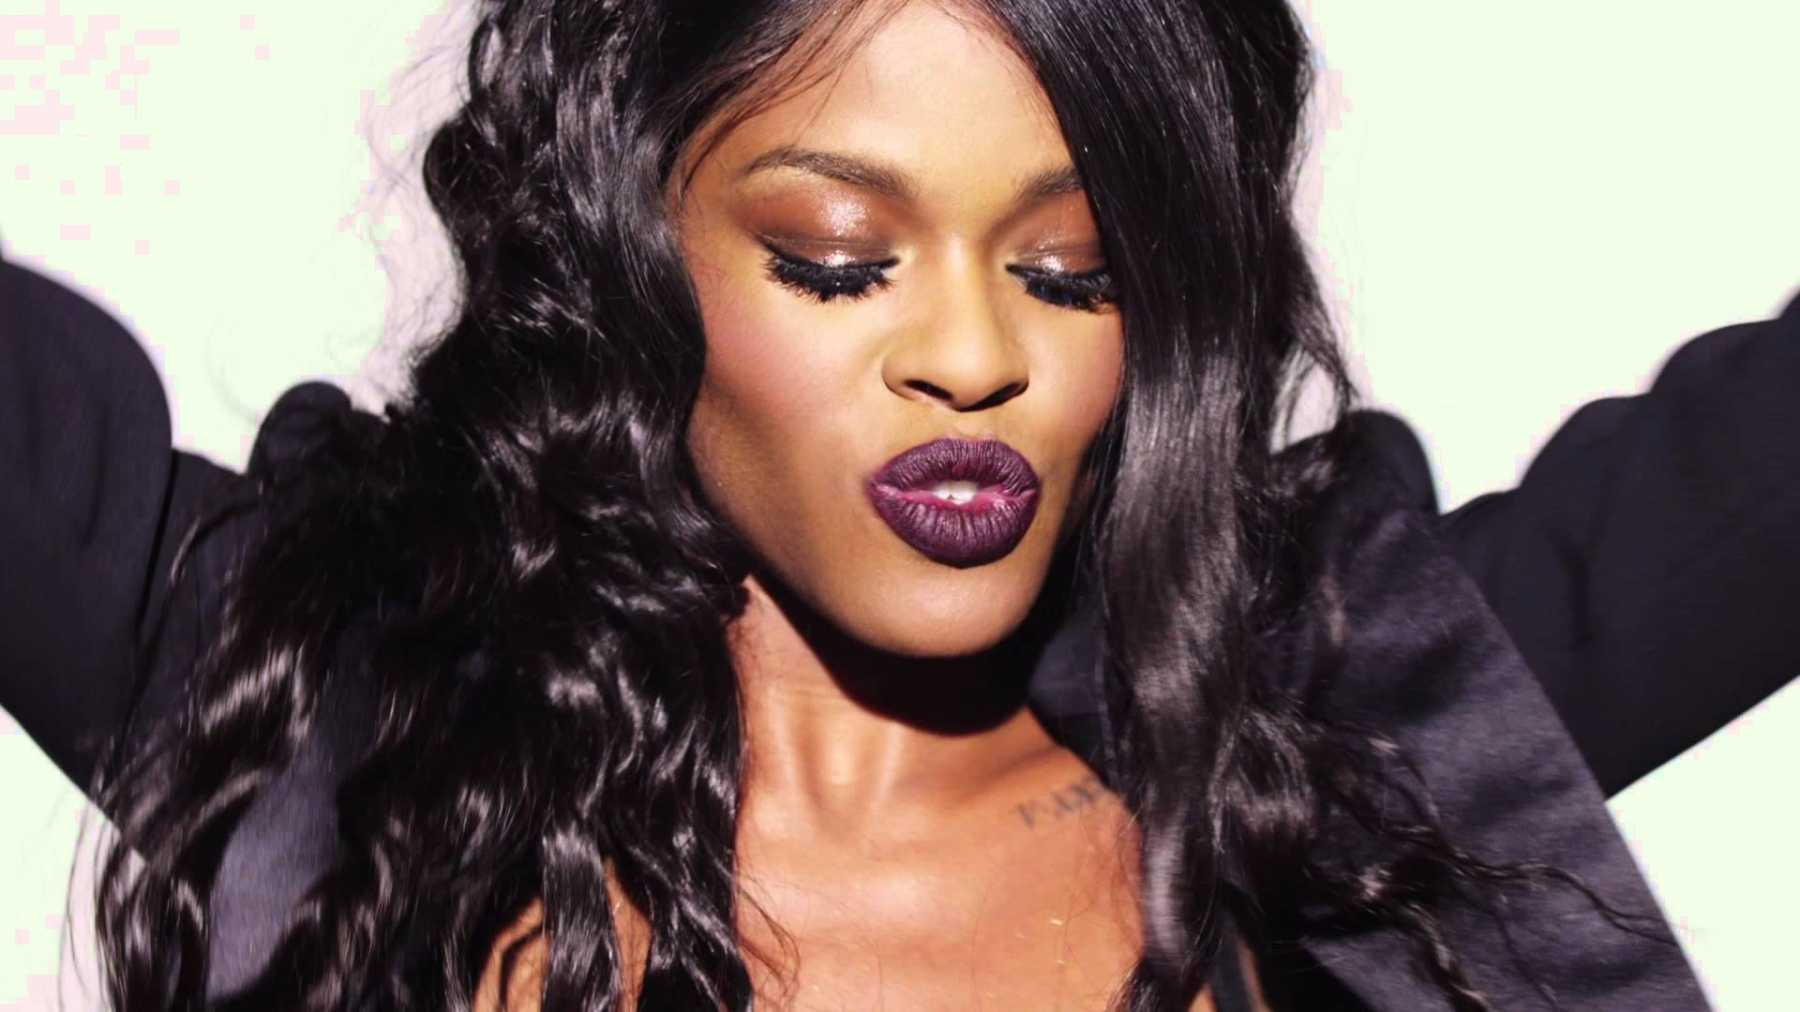 Azealia Banks Puts Her Own Spin on